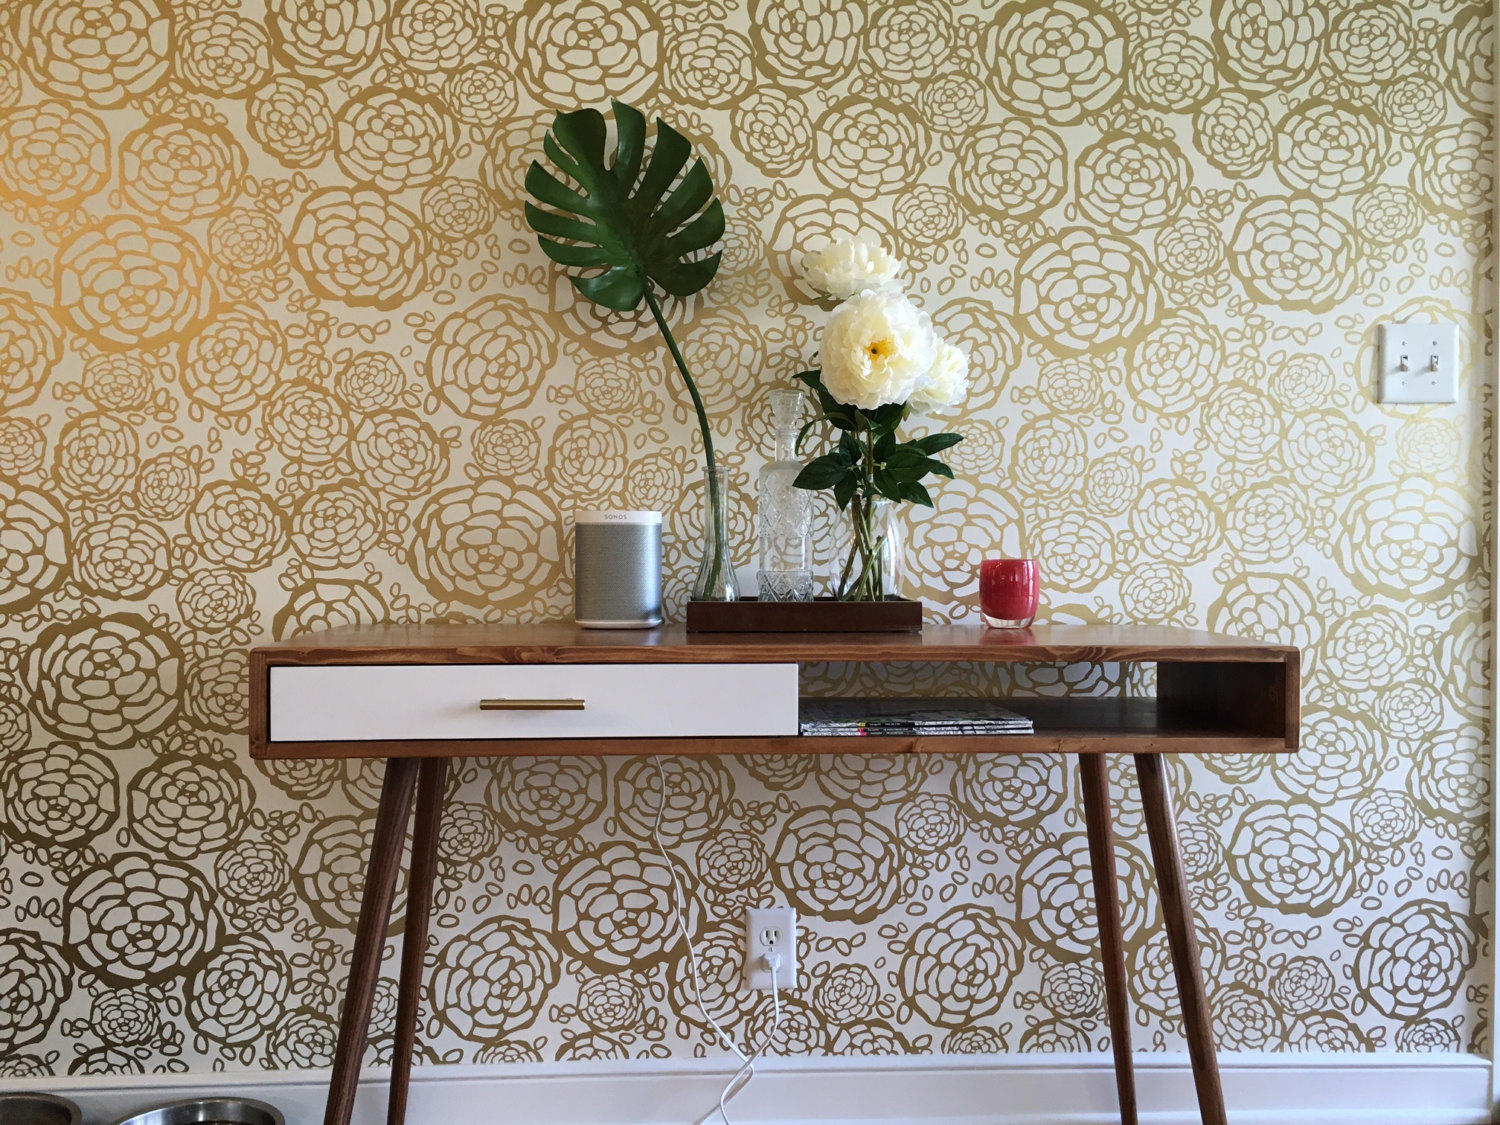 Etsy furniture shops: 7 best stores to check out now